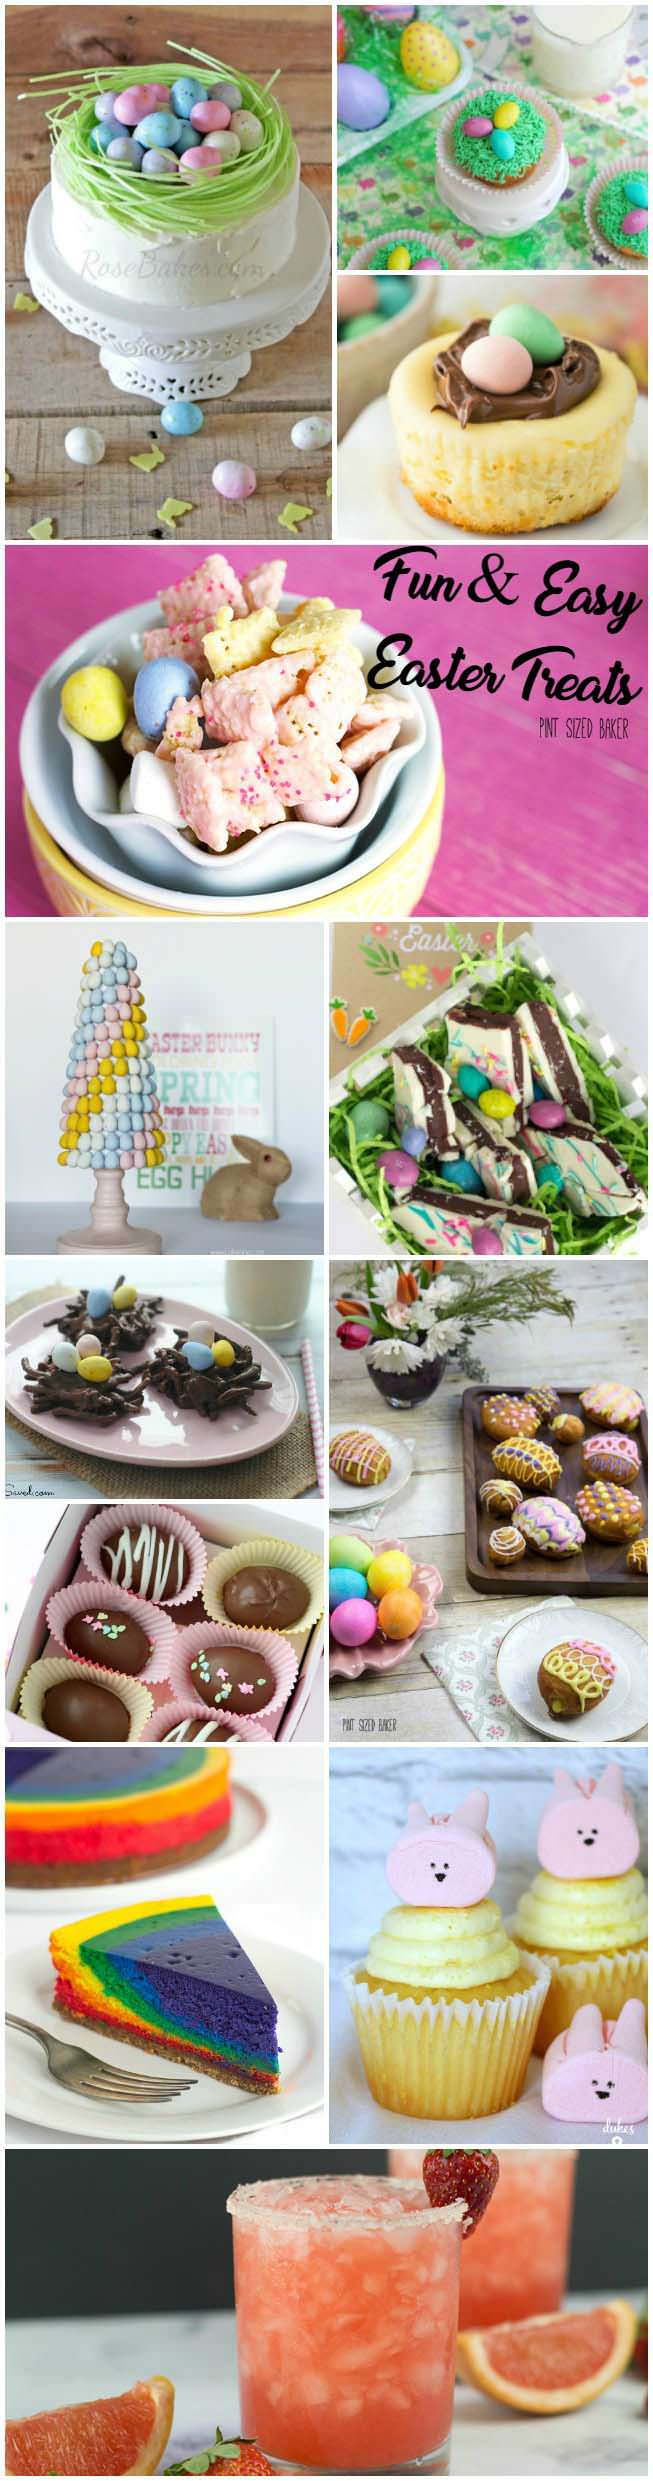 10 Fun and Easy Easter Treats that the kids and adults are going to love. Have a blast this Easter Sunday!